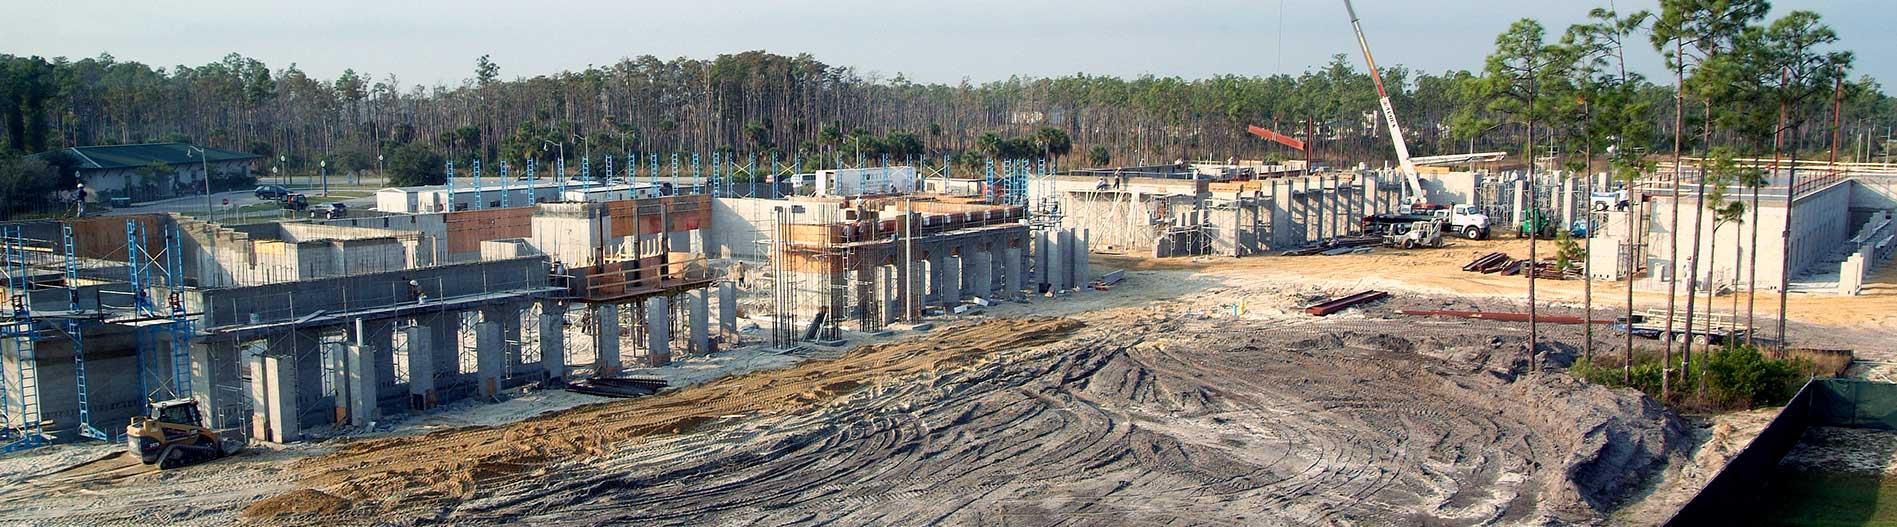 This is a photo showing construction of FGCU campus